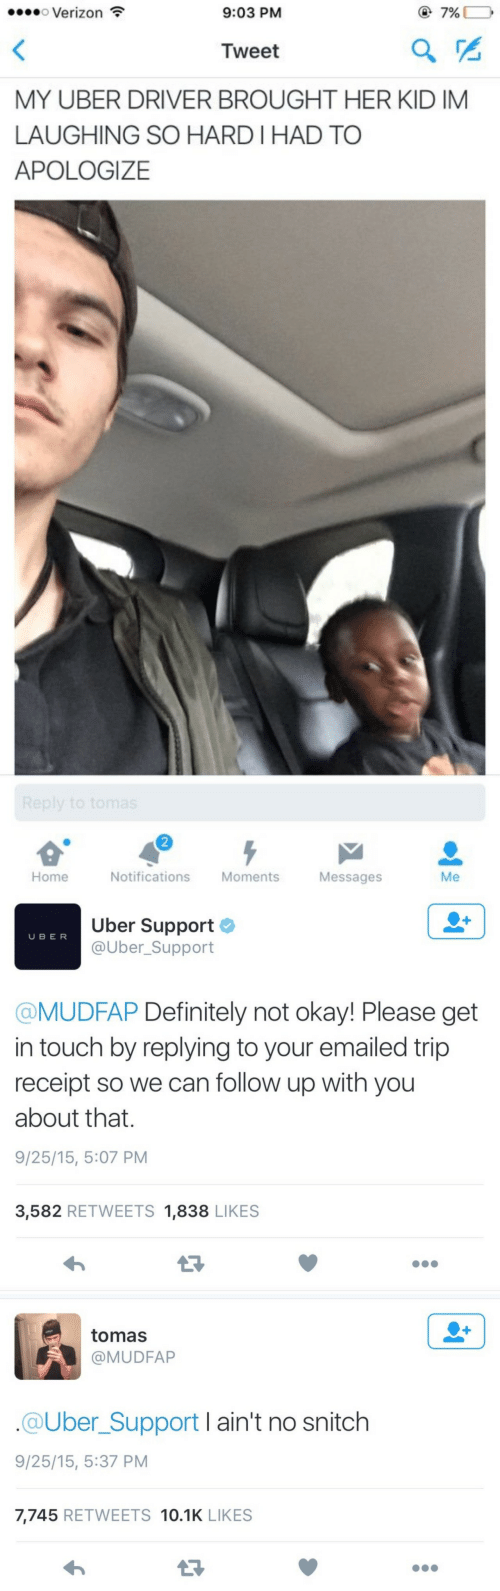 Laughing So: o Verizon  9:03 PM  @7%  Tweet  MY UBER DRIVER BROUGHT HER KID IM  LAUGHING SO HARD I HAD TO  APOLOGIZE  2  Home  Notifications Moments  Messages  Me   Uber Support  @Uber_Support  U BER  @MUDFAP Definitely not okay! Please get  in touch by replying to your emailed trip  receipt so we can follow up with you  about that.  9/25/15, 5:07 PM  3,582 RETWEETS 1,838 LIKES   tomas  @MUDFAP  @Uber_Support I ain't no snitch  9/25/15, 5:37 PM  7,745 RETWEETS 10.1K LIKES  13